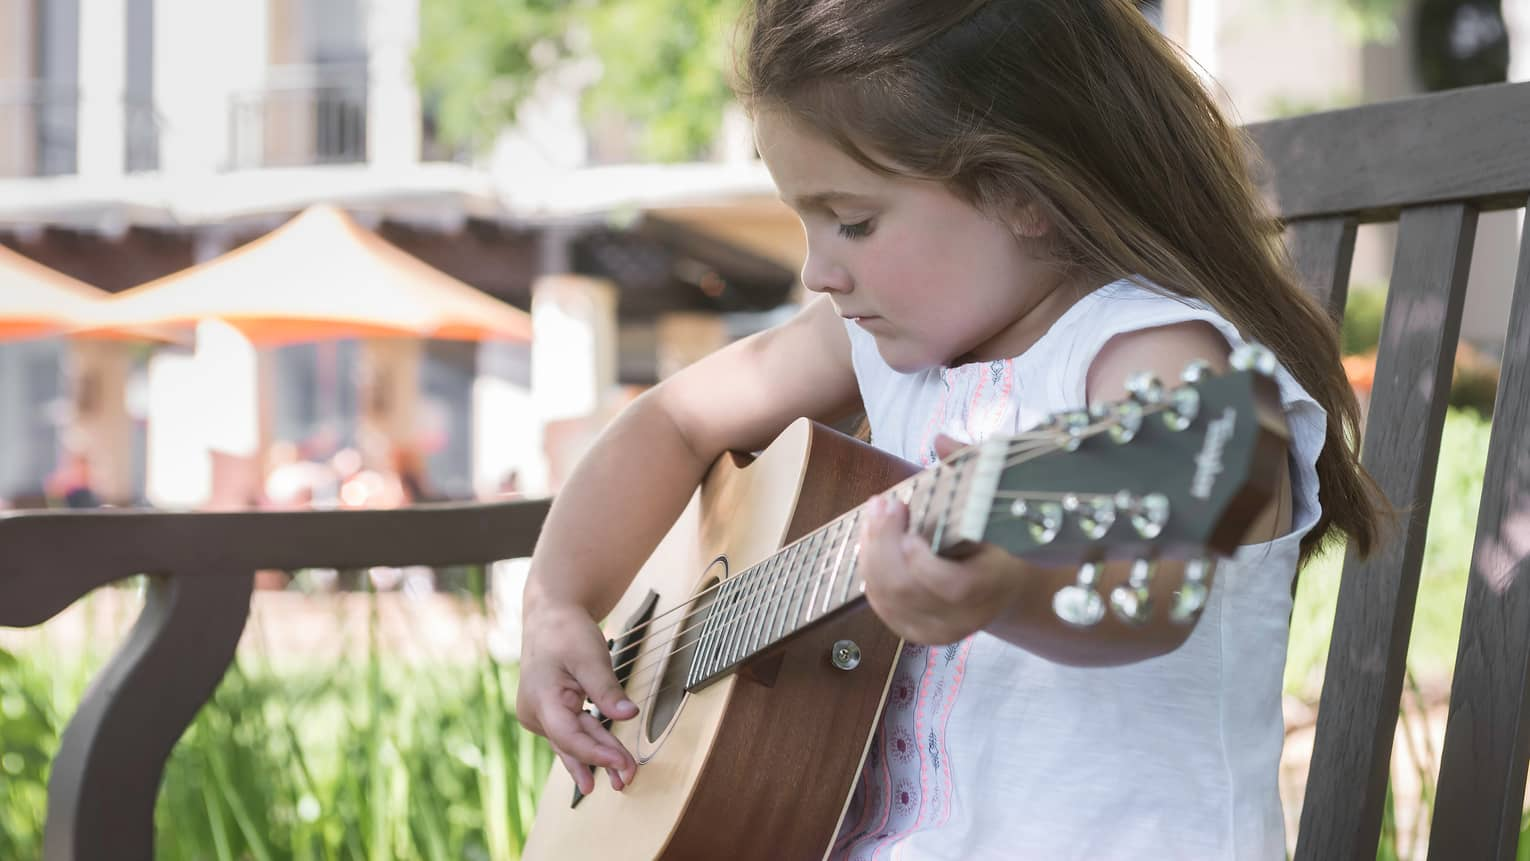 Young girl plays guitar on patio chair